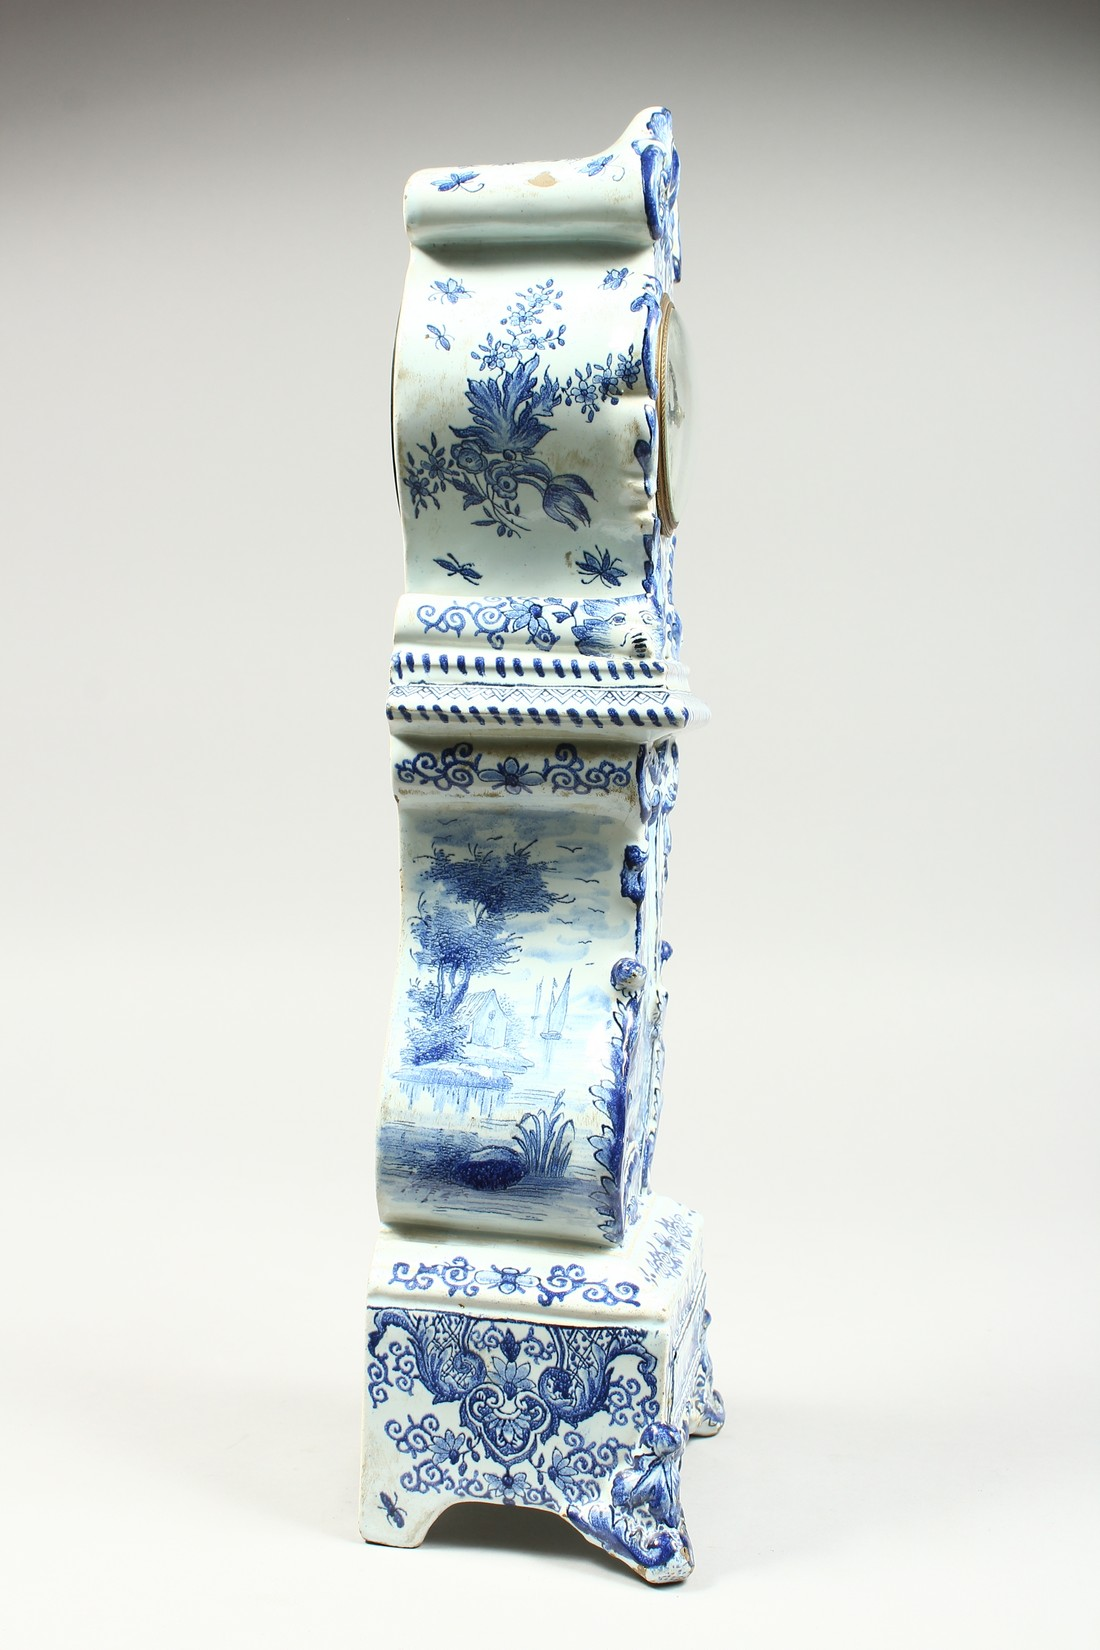 A 19TH CENTURY DUTCH BLUE AND WHITE MINIATURE PORCELAIN LONGCASE CLOCK, the movement by Charles - Image 5 of 8